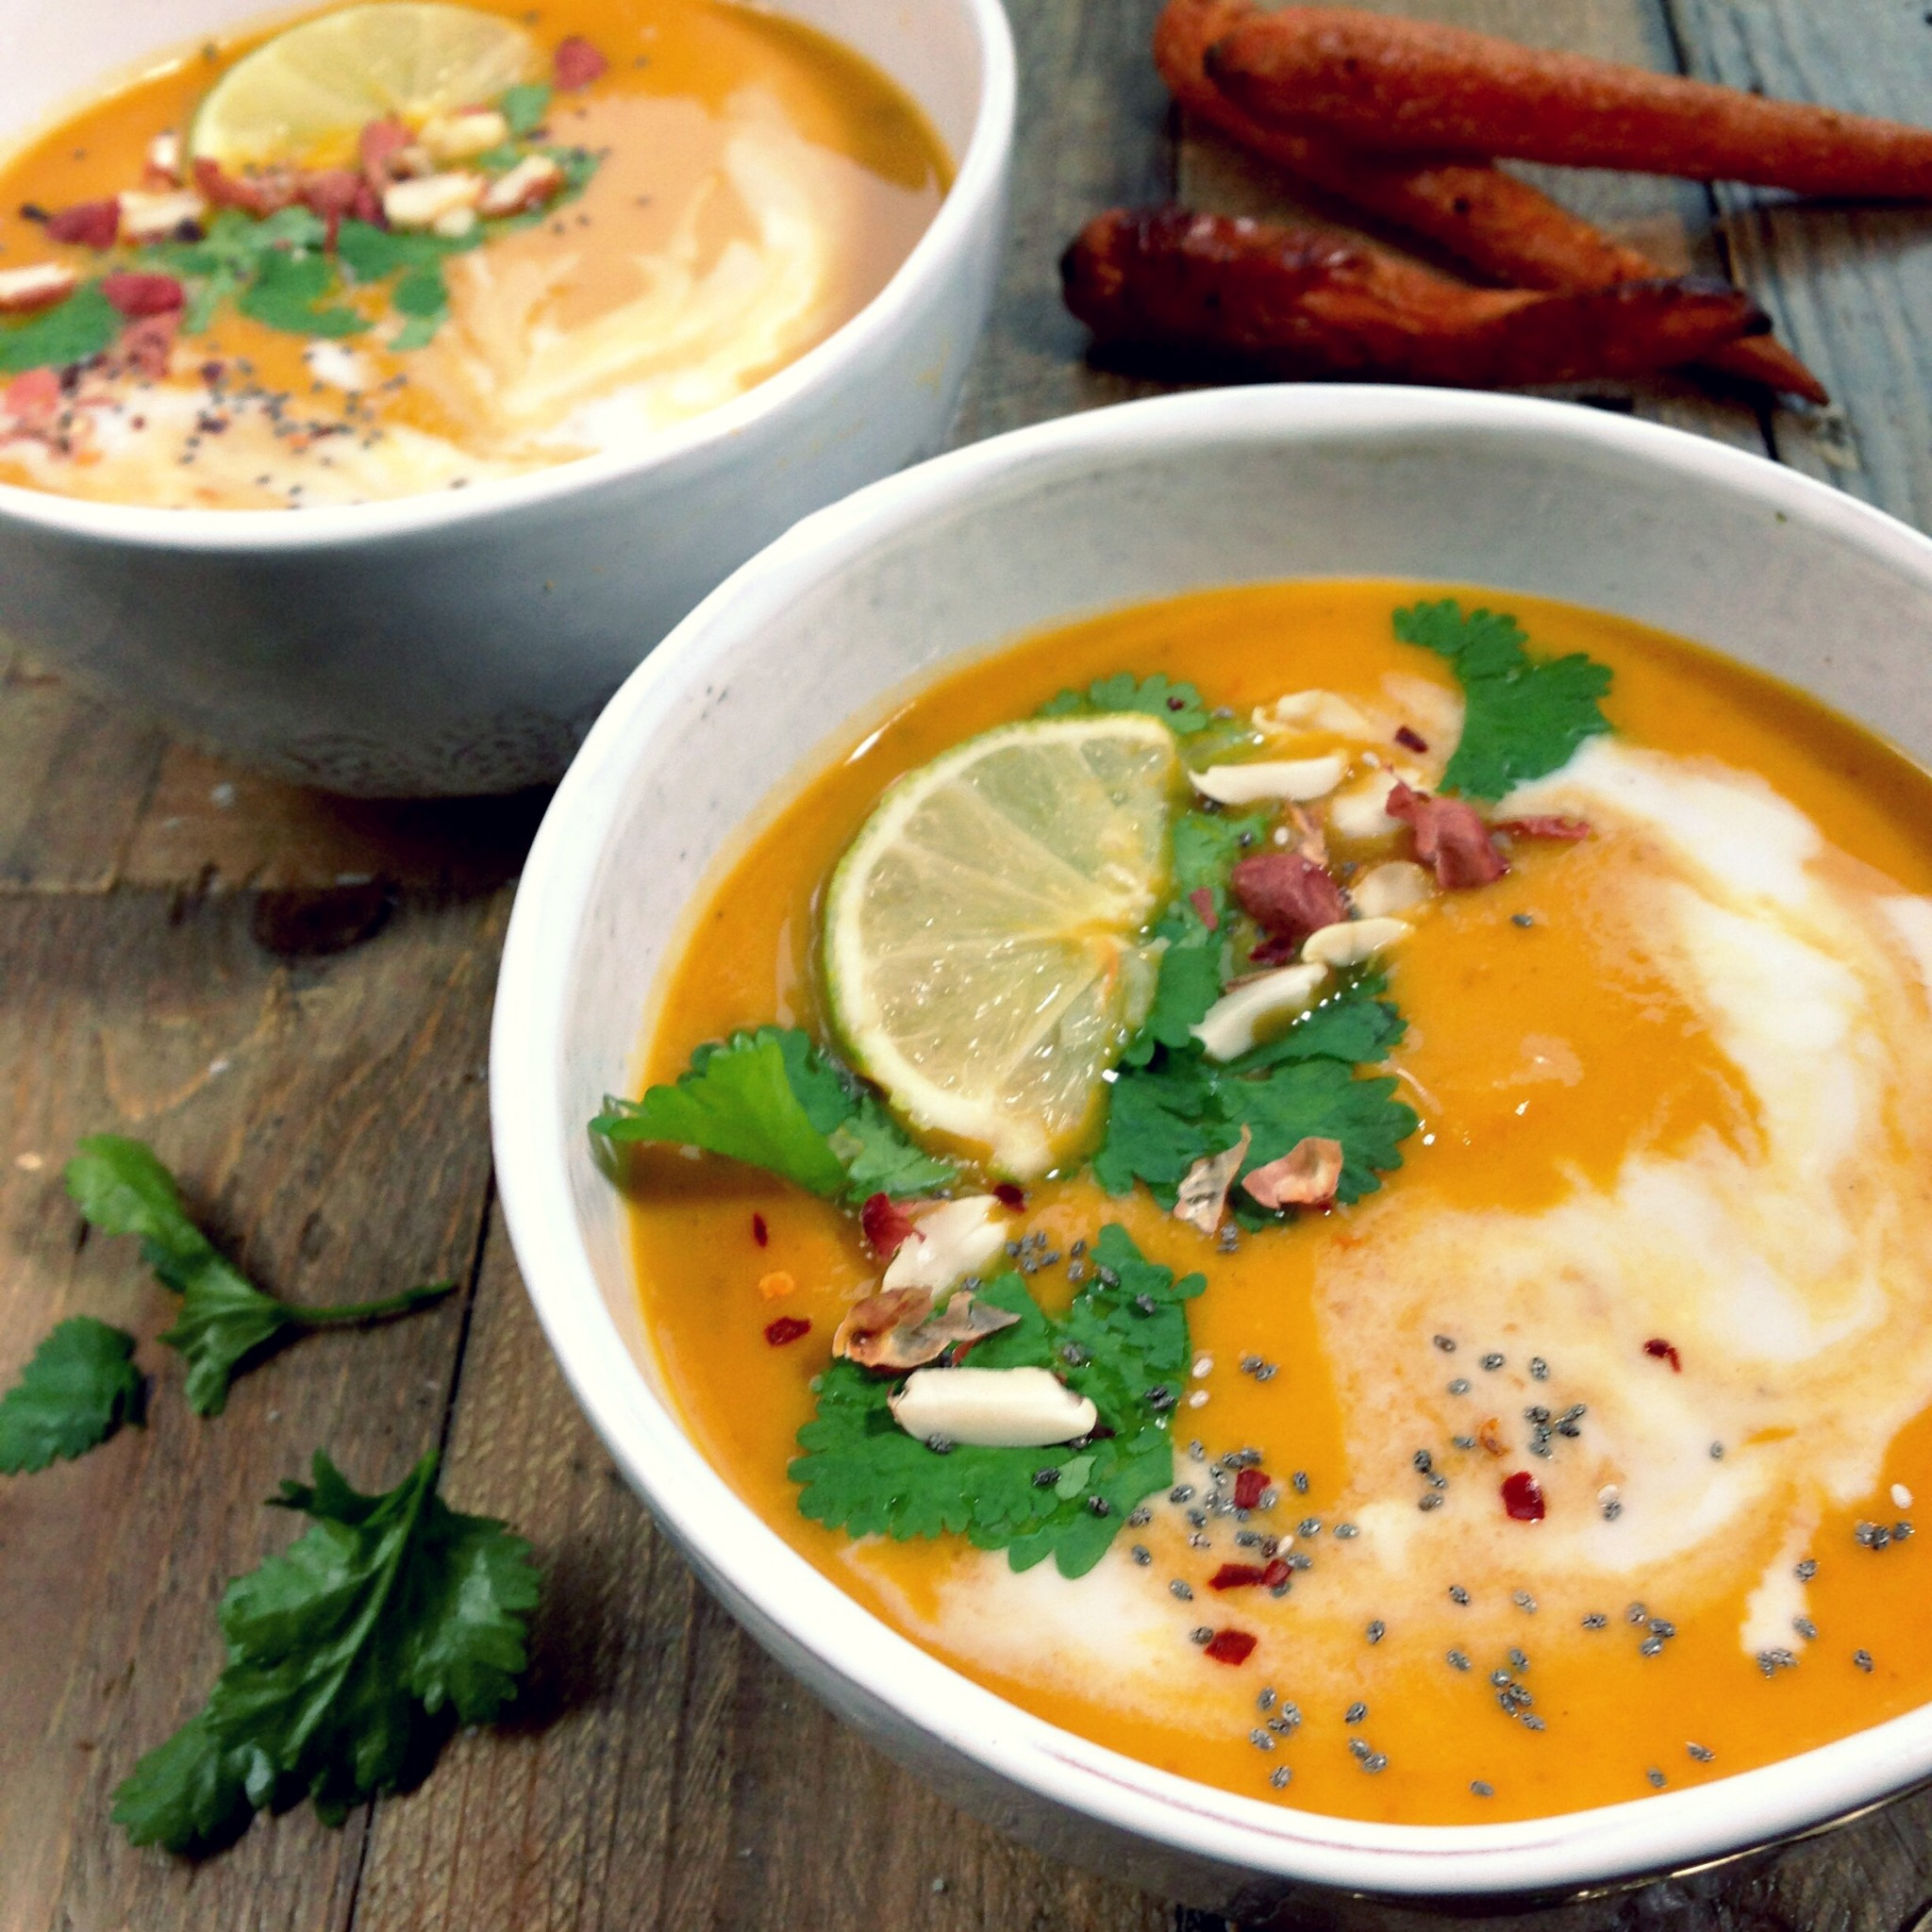 Red Thai sweet potato and carrot soup